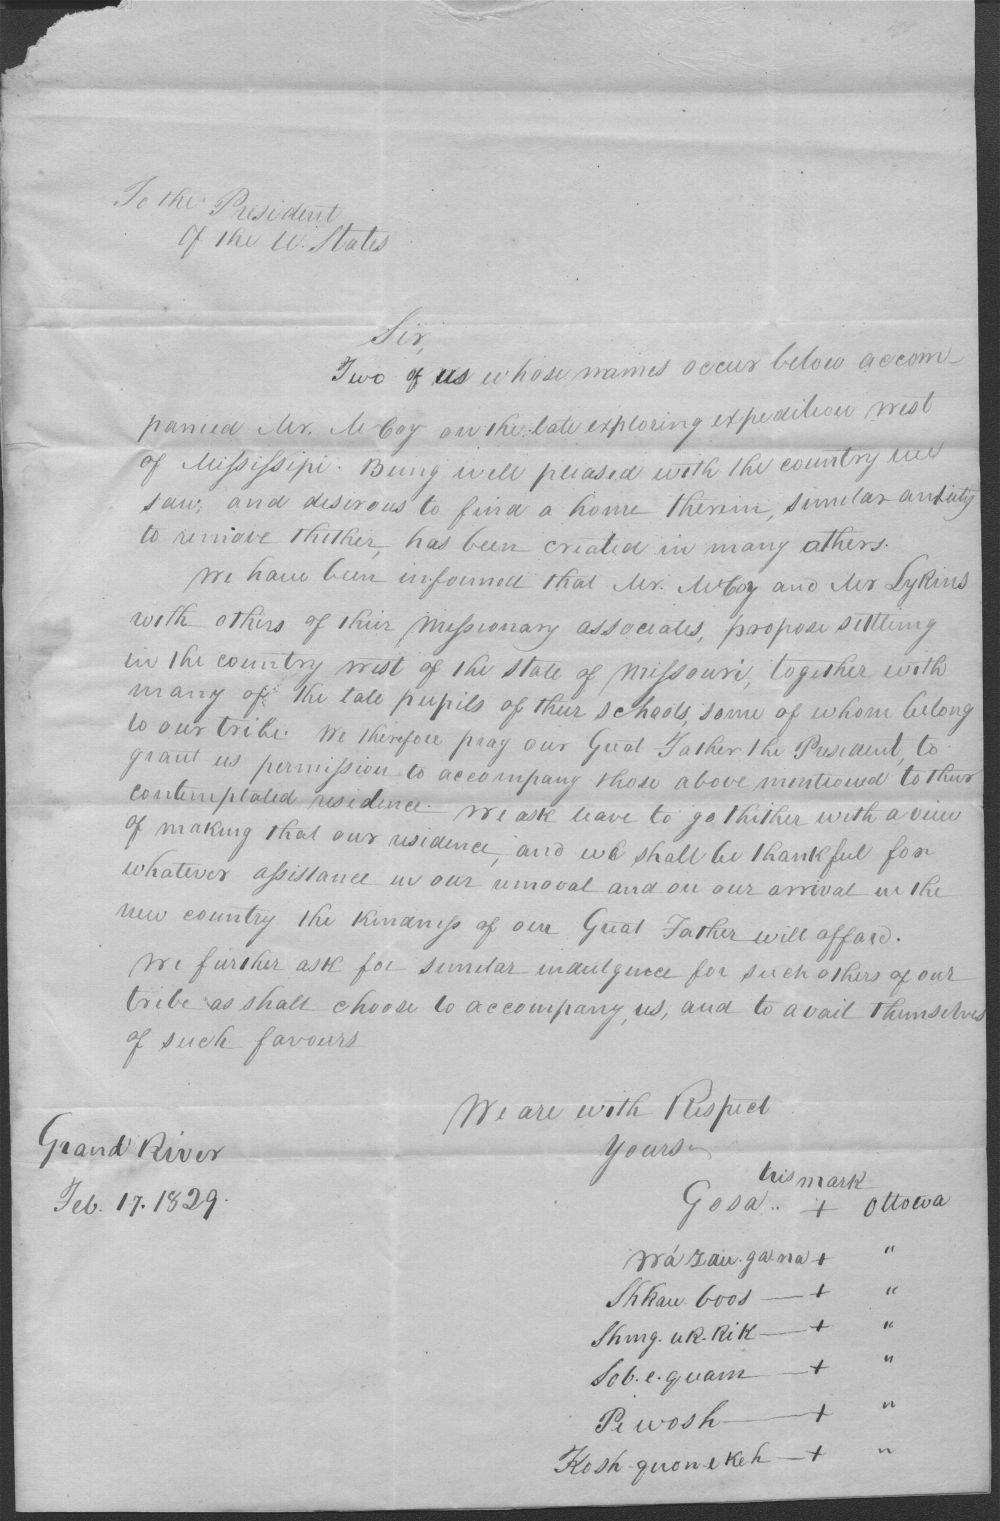 Ottawa Indians to President John Quincy Adams - 2